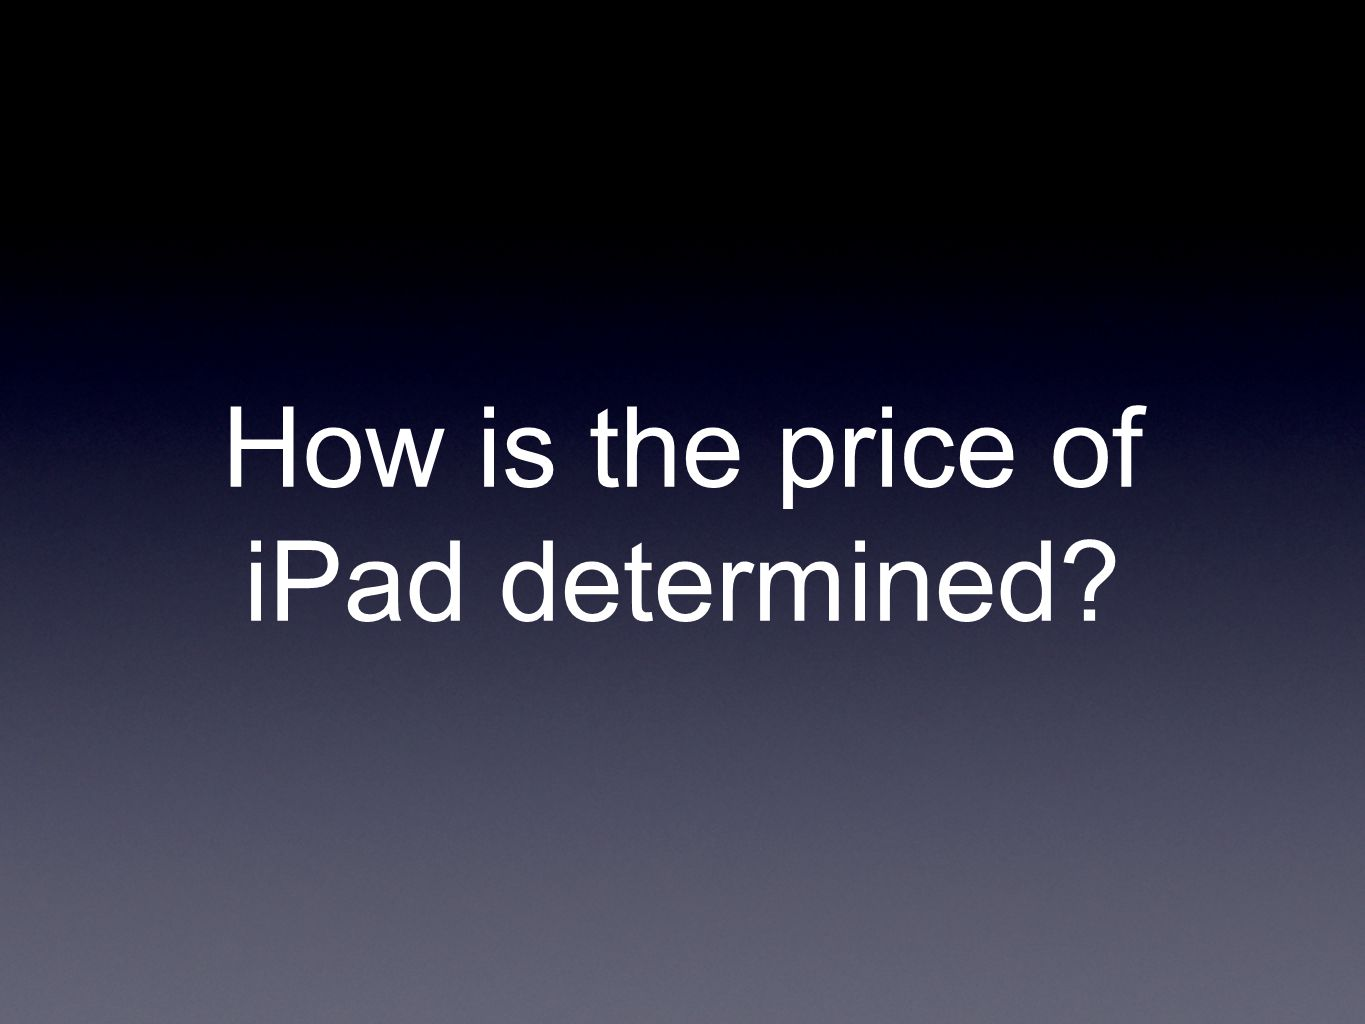 How is the price of iPad determined?